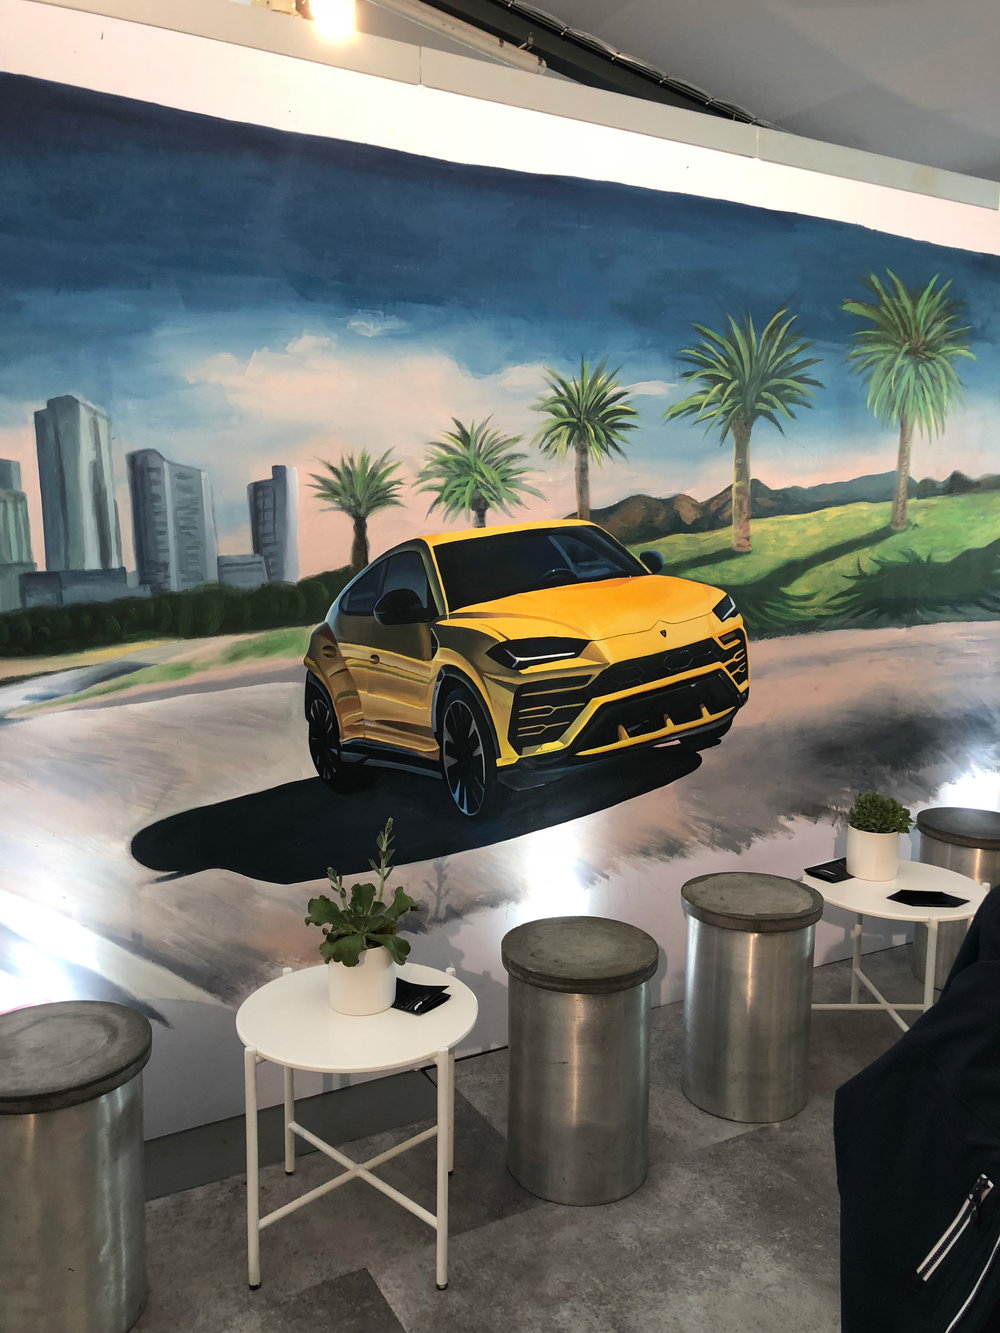 Urus Melbourne Scene,  2018, acrylic on fabric panel, 5x3m, Lamborghini Lounge, Australian Grand Prix.